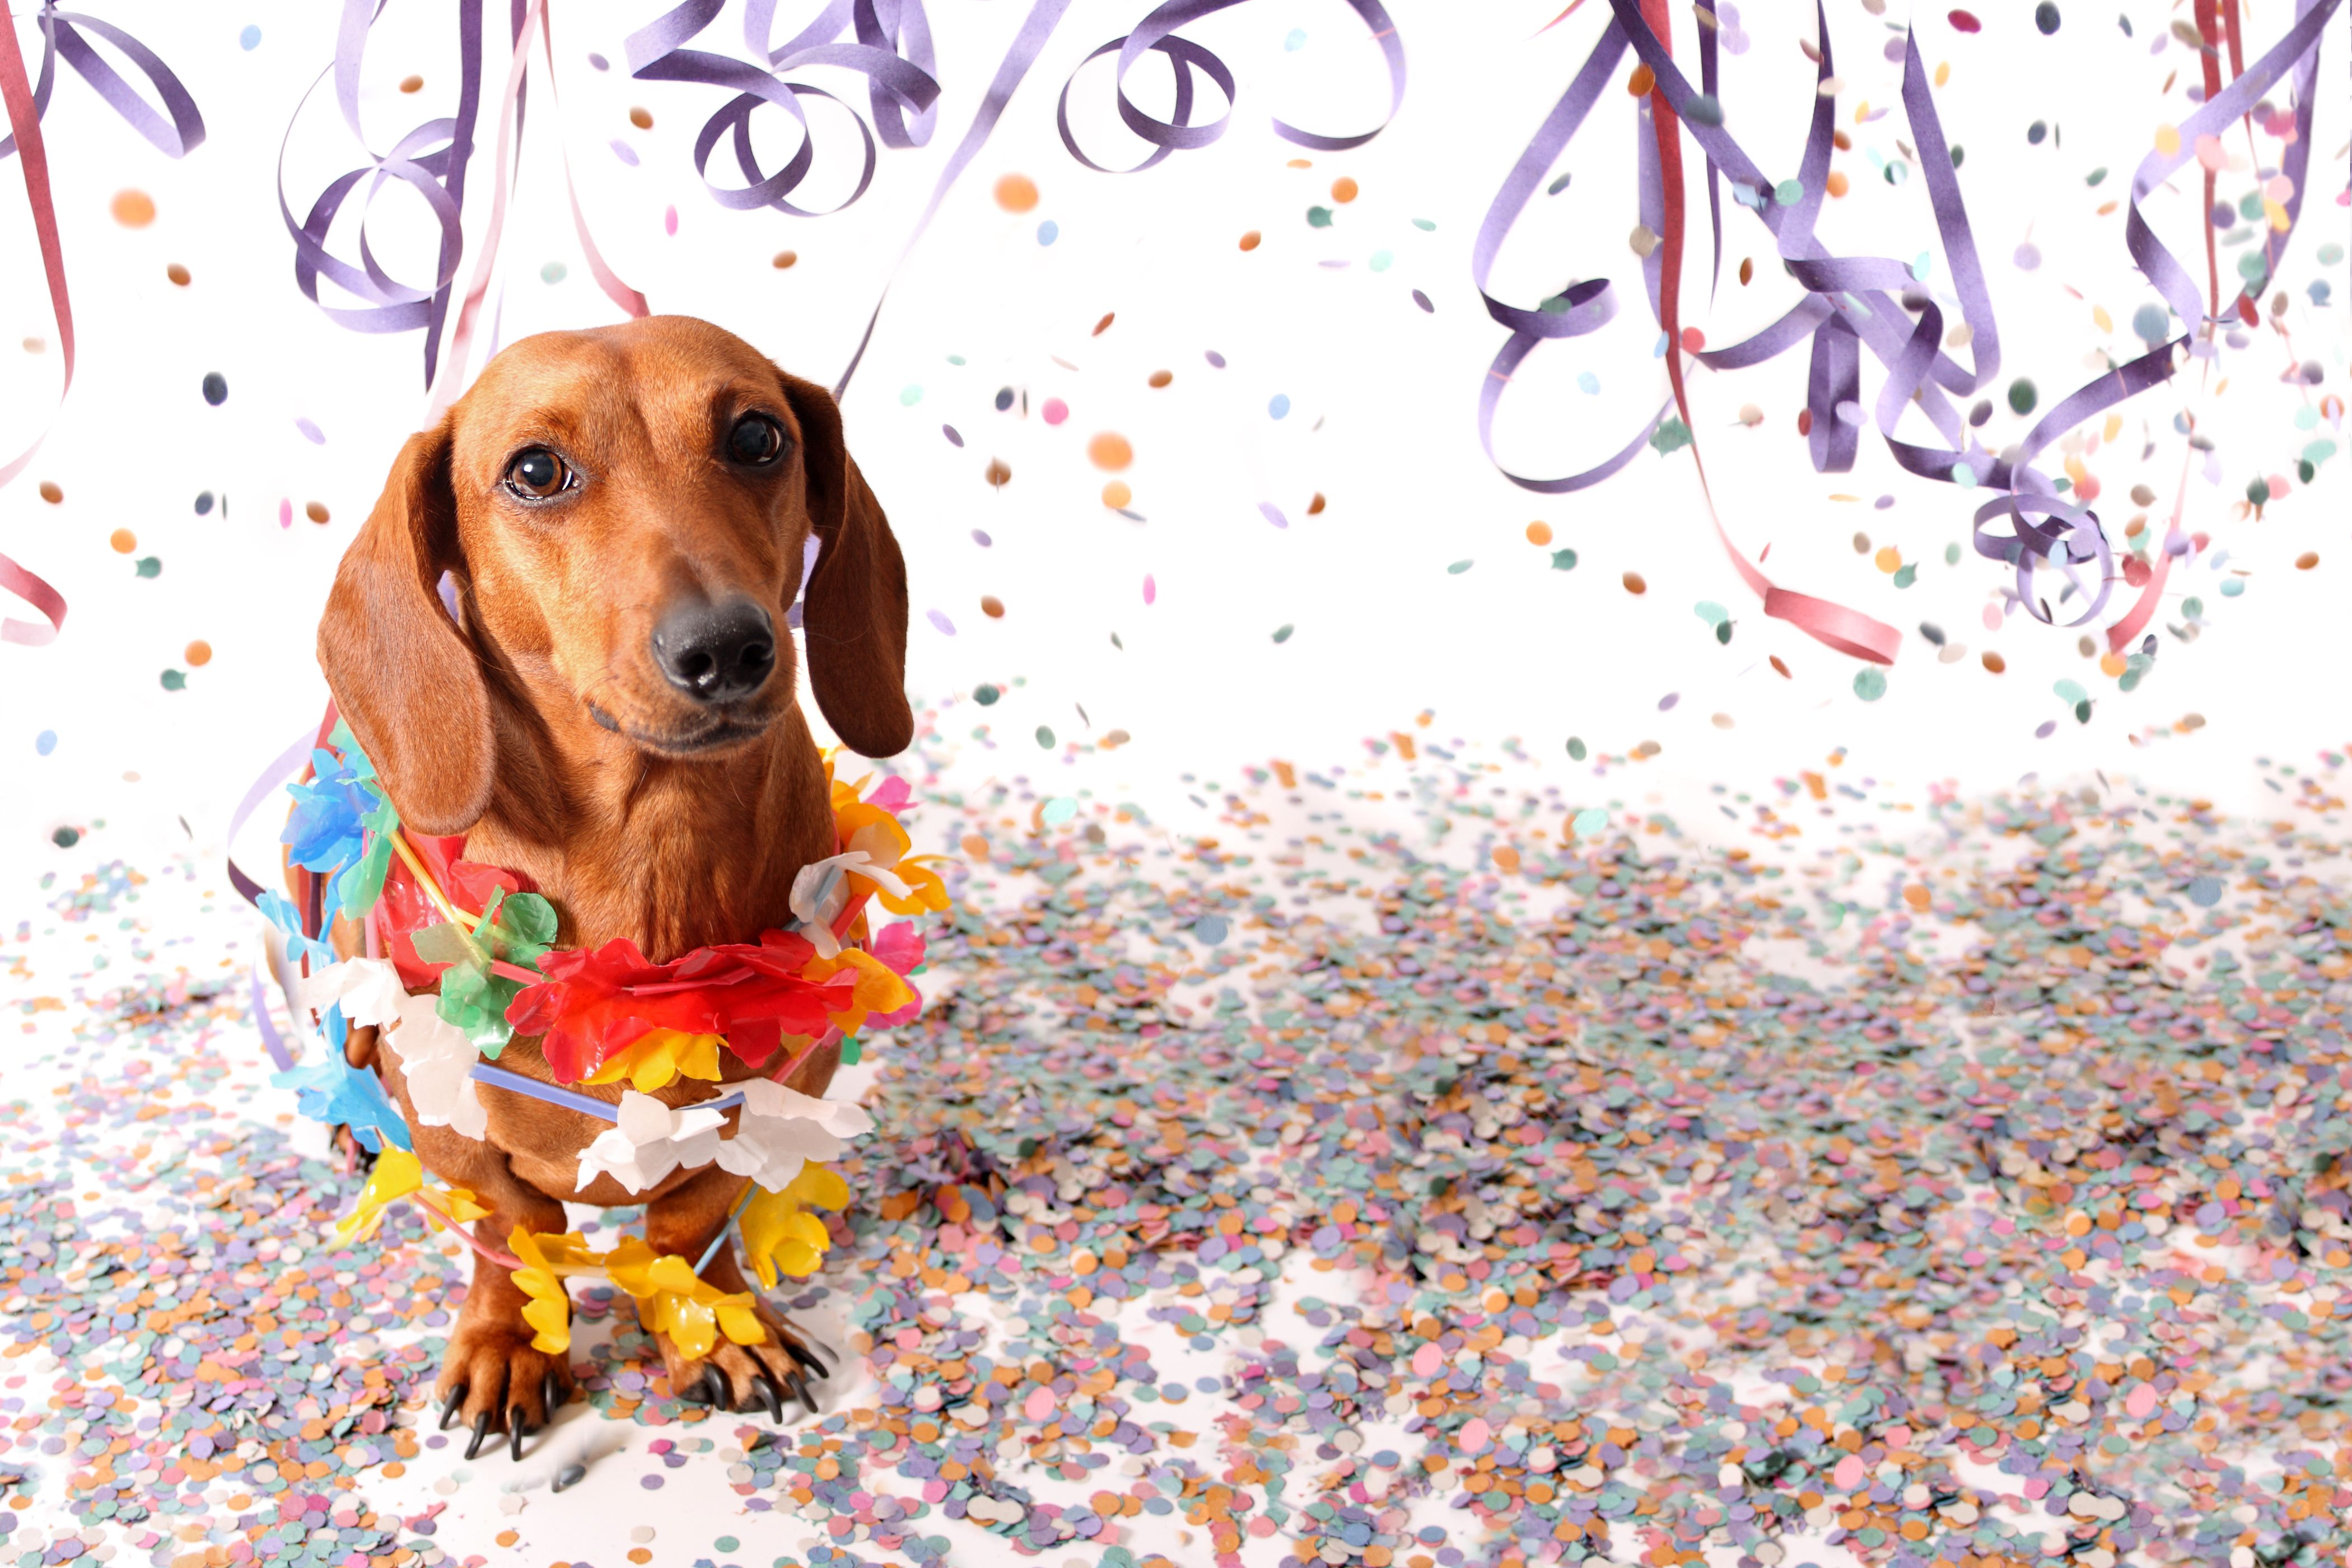 Plan An End Of Summer Party With The Secret Life Of Pets 2 And This Mom Approved Activity Kit Secret Life Of Pets Dog Photoshoot Pet Photography Pets